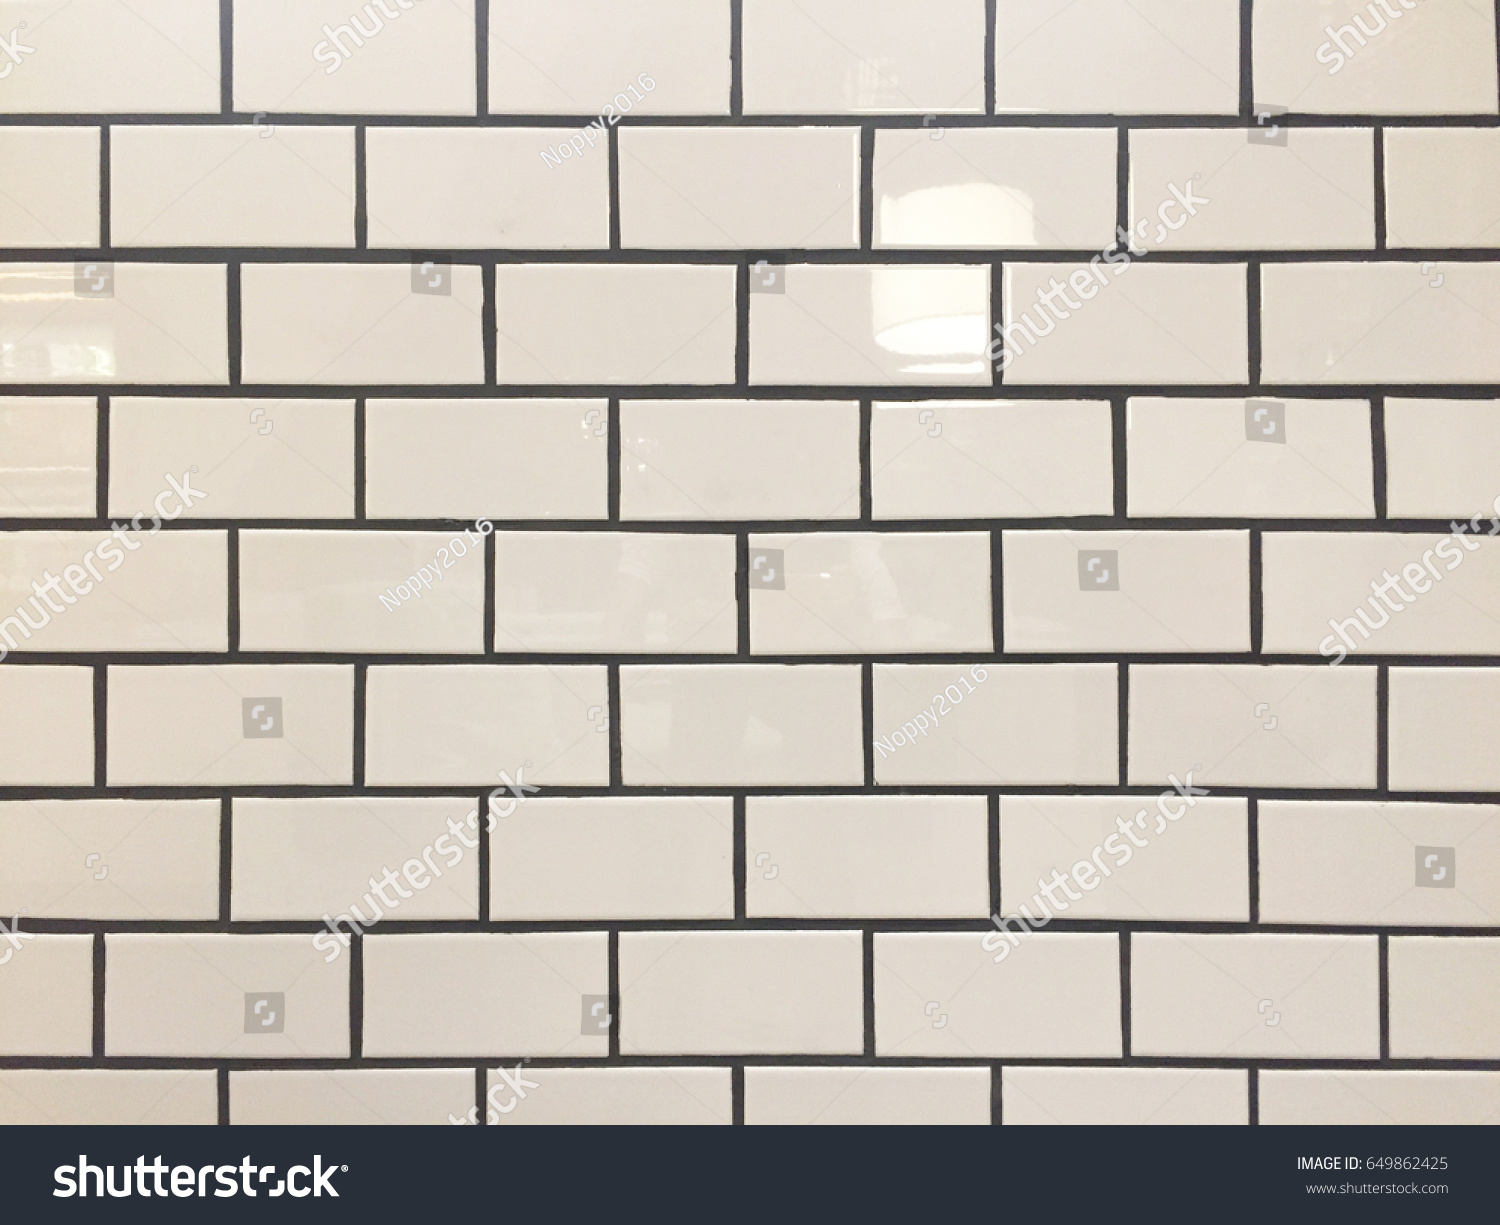 White ceramic tiles brick pattern black stock photo 649862425 white ceramic tiles brick pattern with black grout dailygadgetfo Gallery